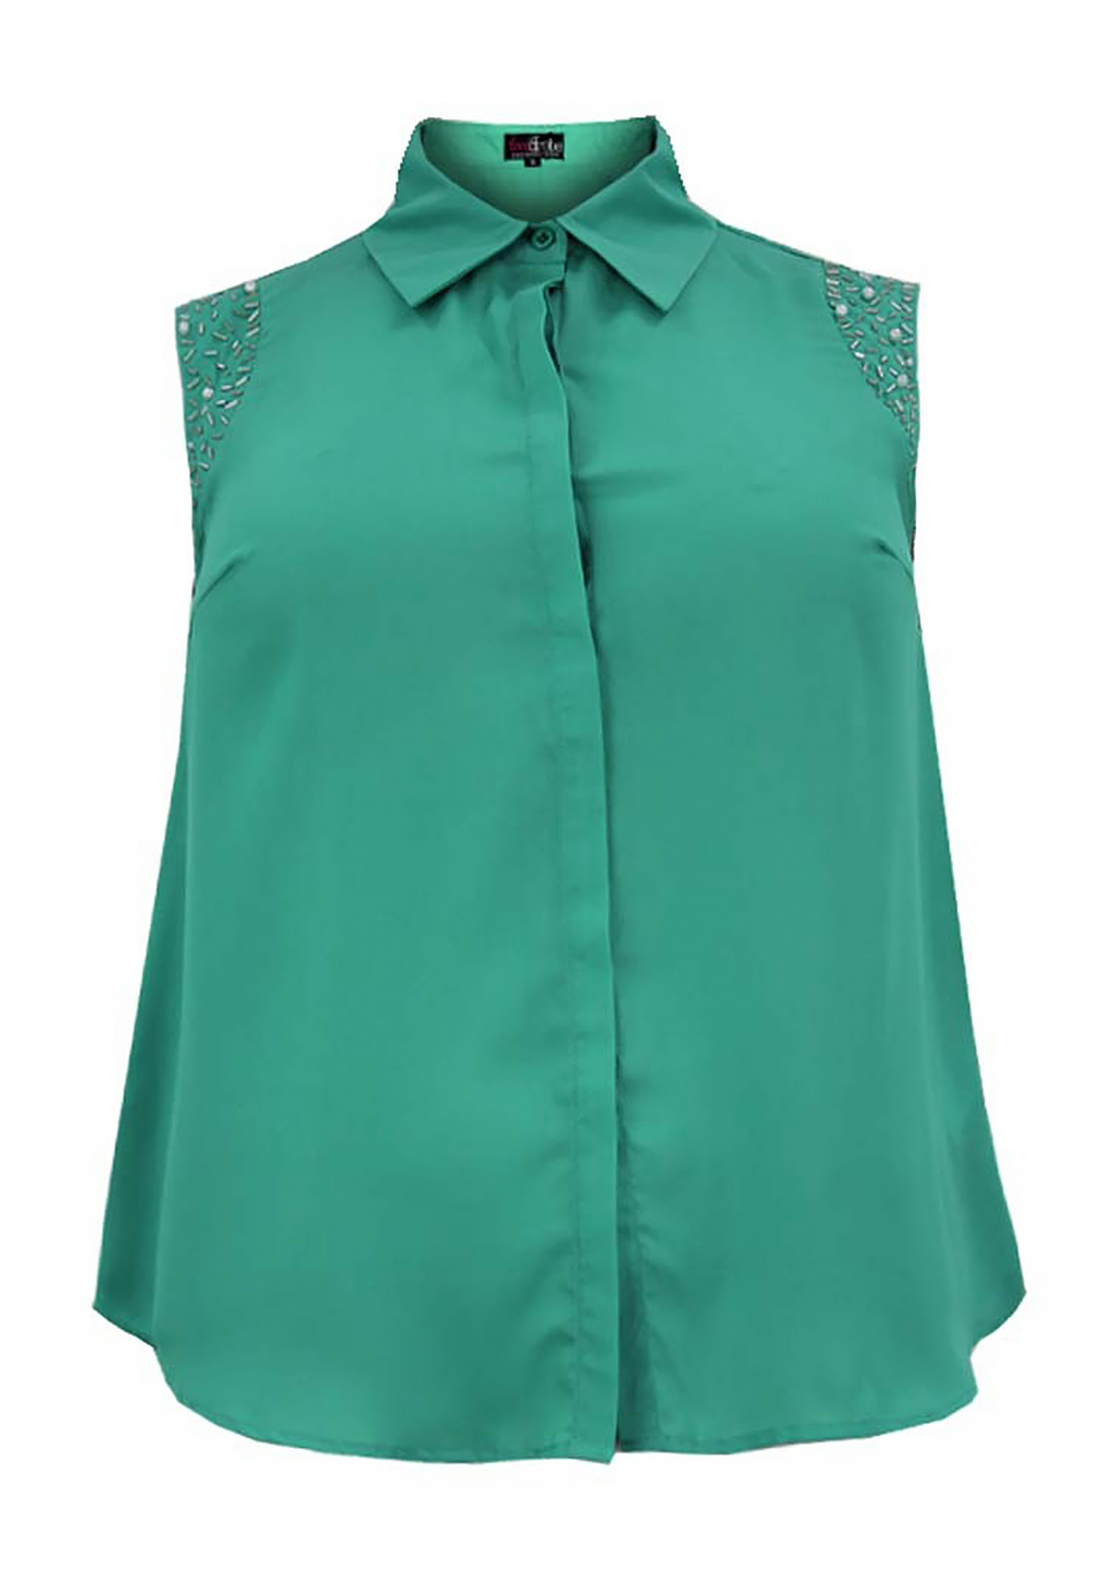 Lovedrobe Sleeveless Embellished Top, Green